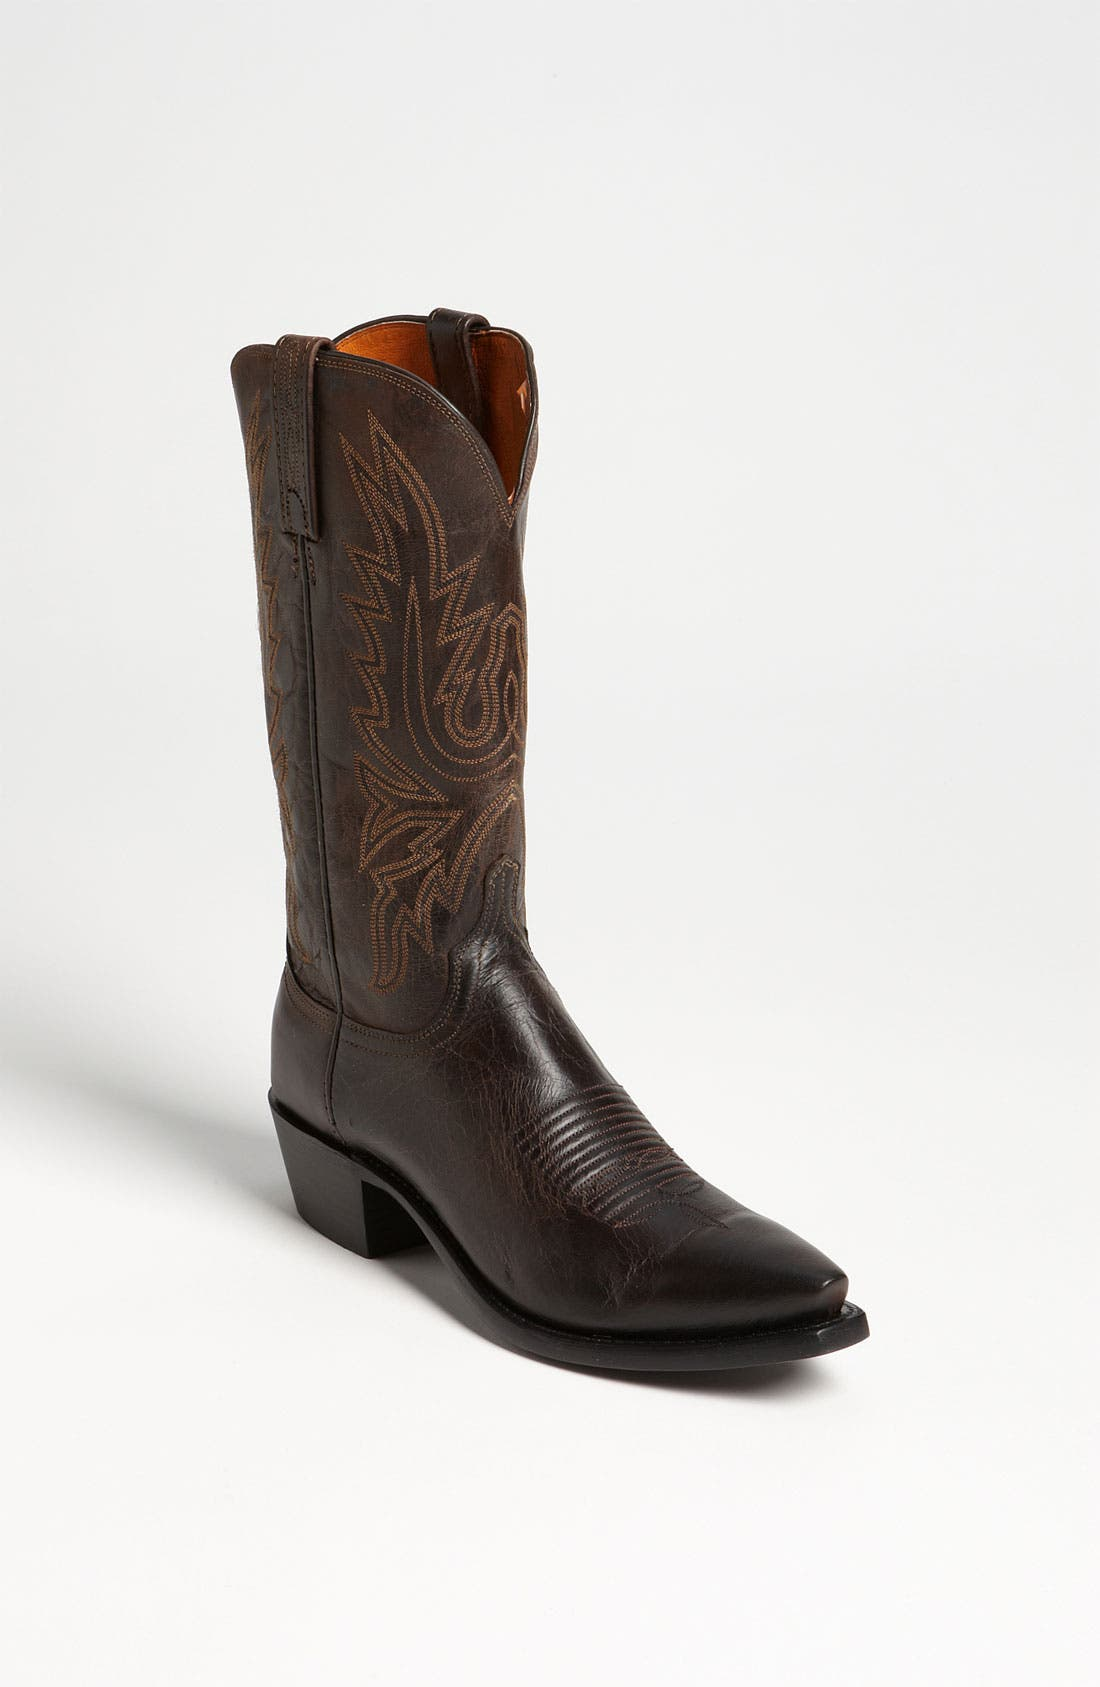 Alternate Image 1 Selected - Lucchese 'New Leaf' Boot